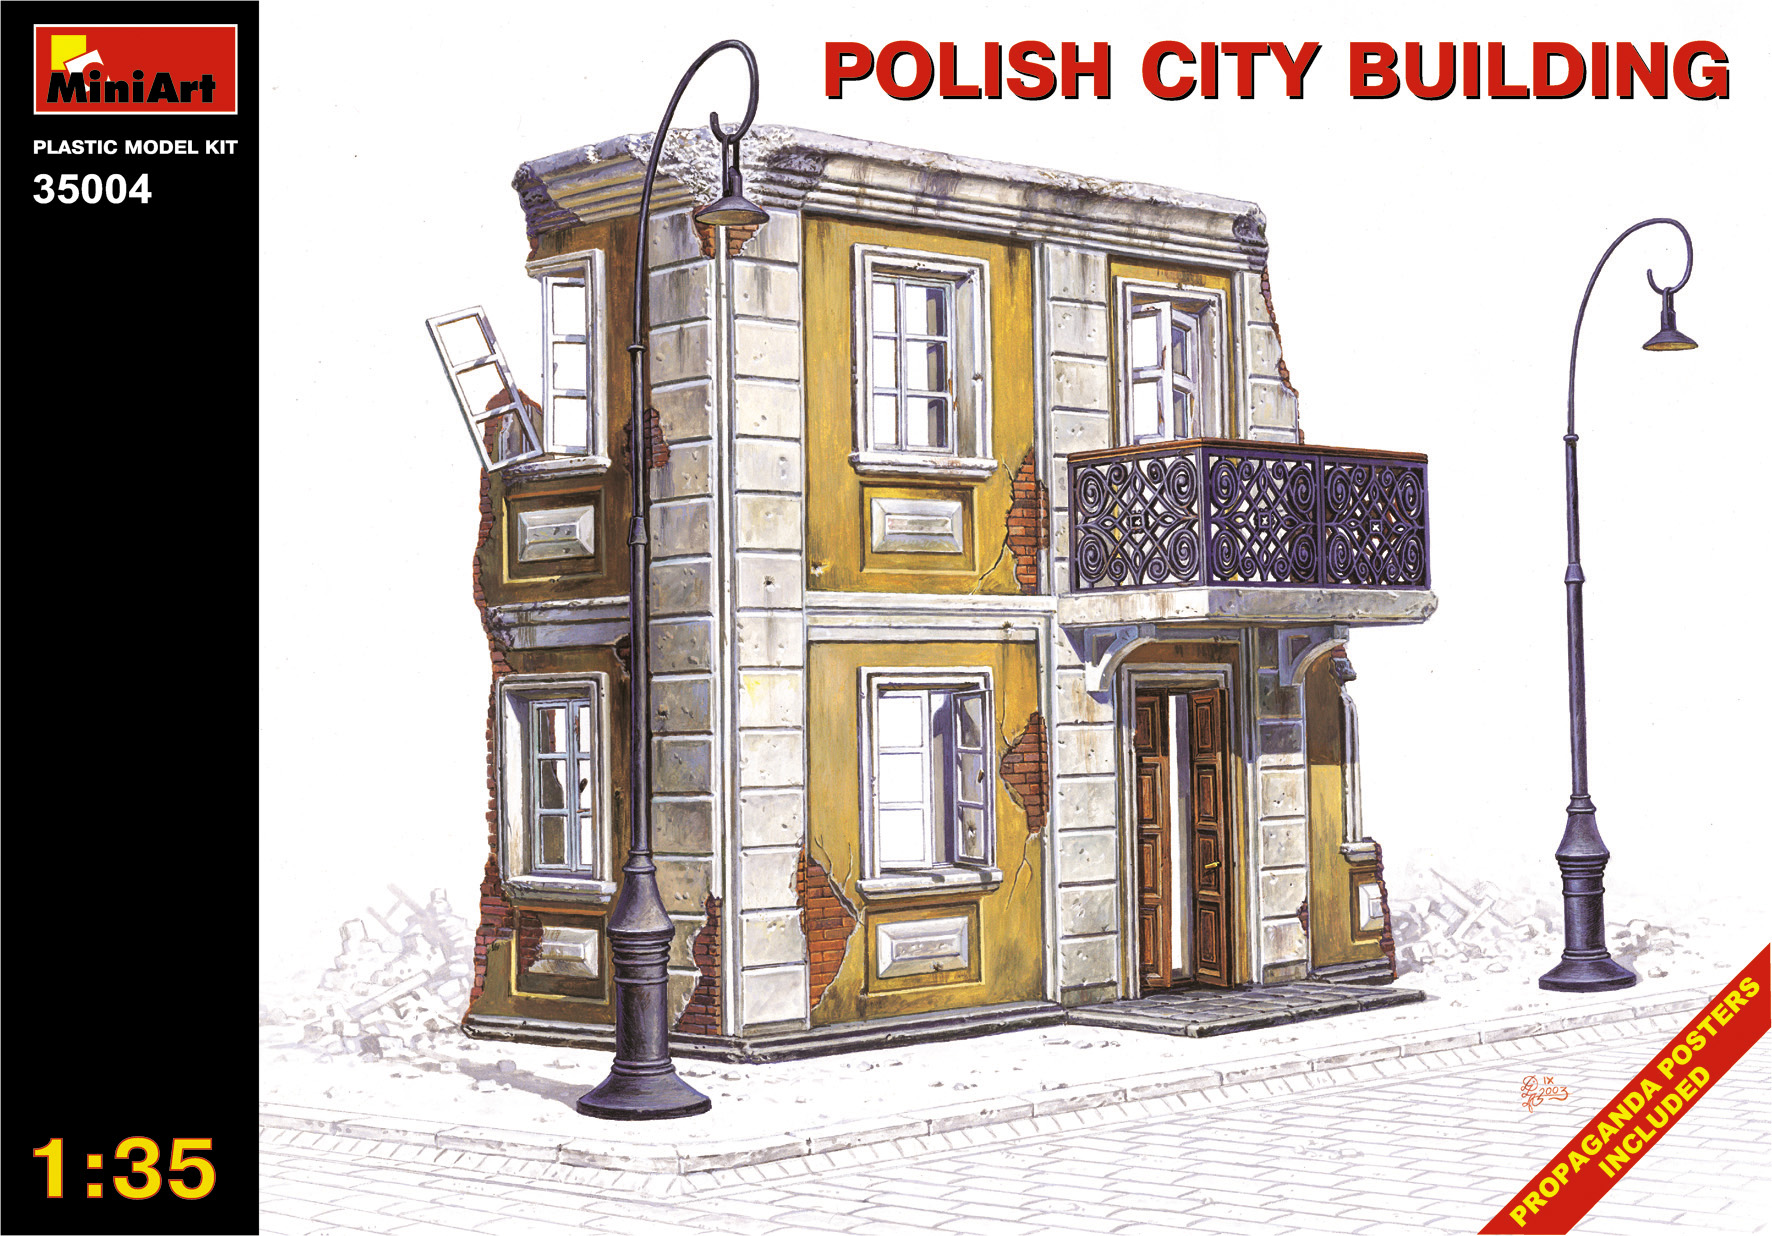 35004 POLISH CITY BUILDING